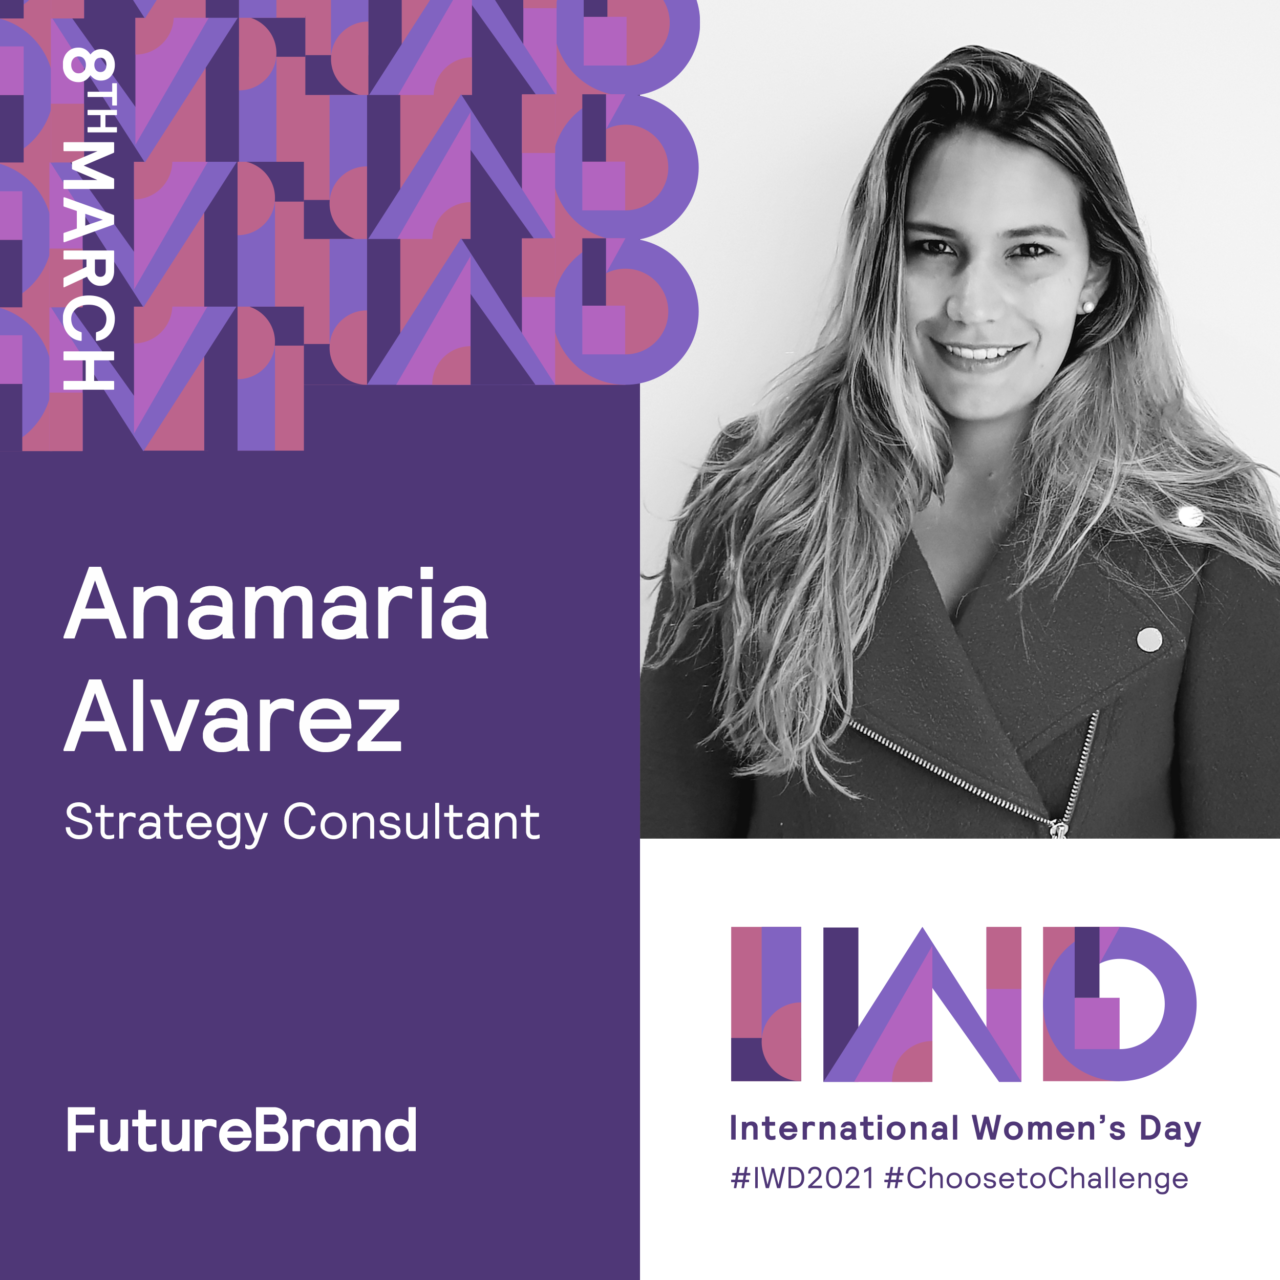 FutureBrand to host open conversations throughout March as part of International Women's Day